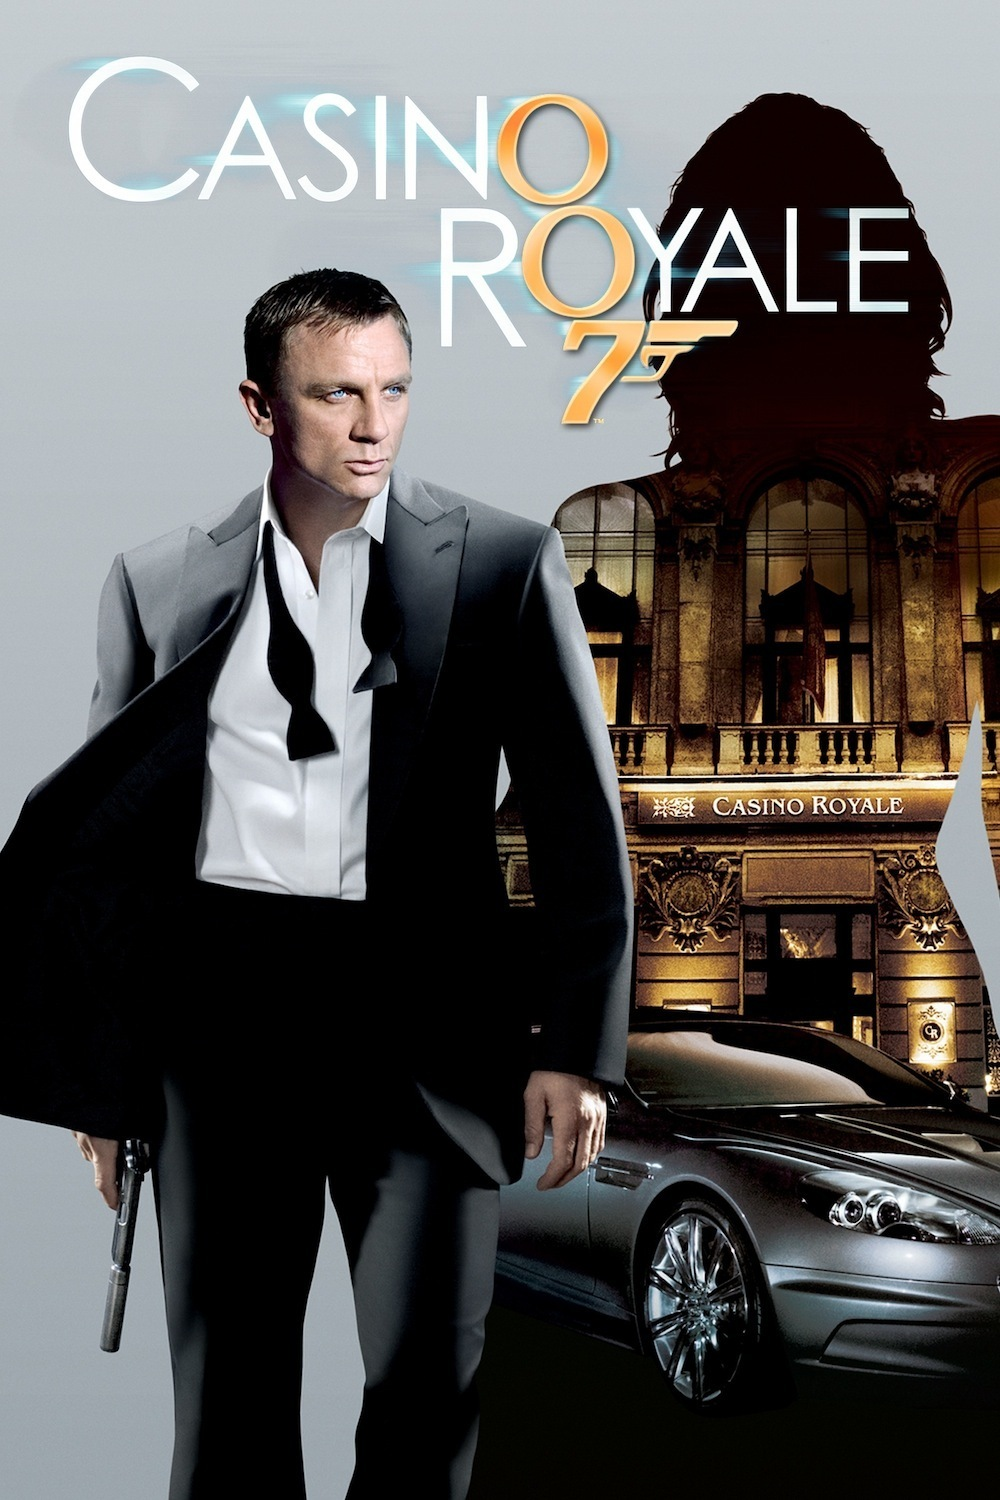 007 James Bond: Casino Royale